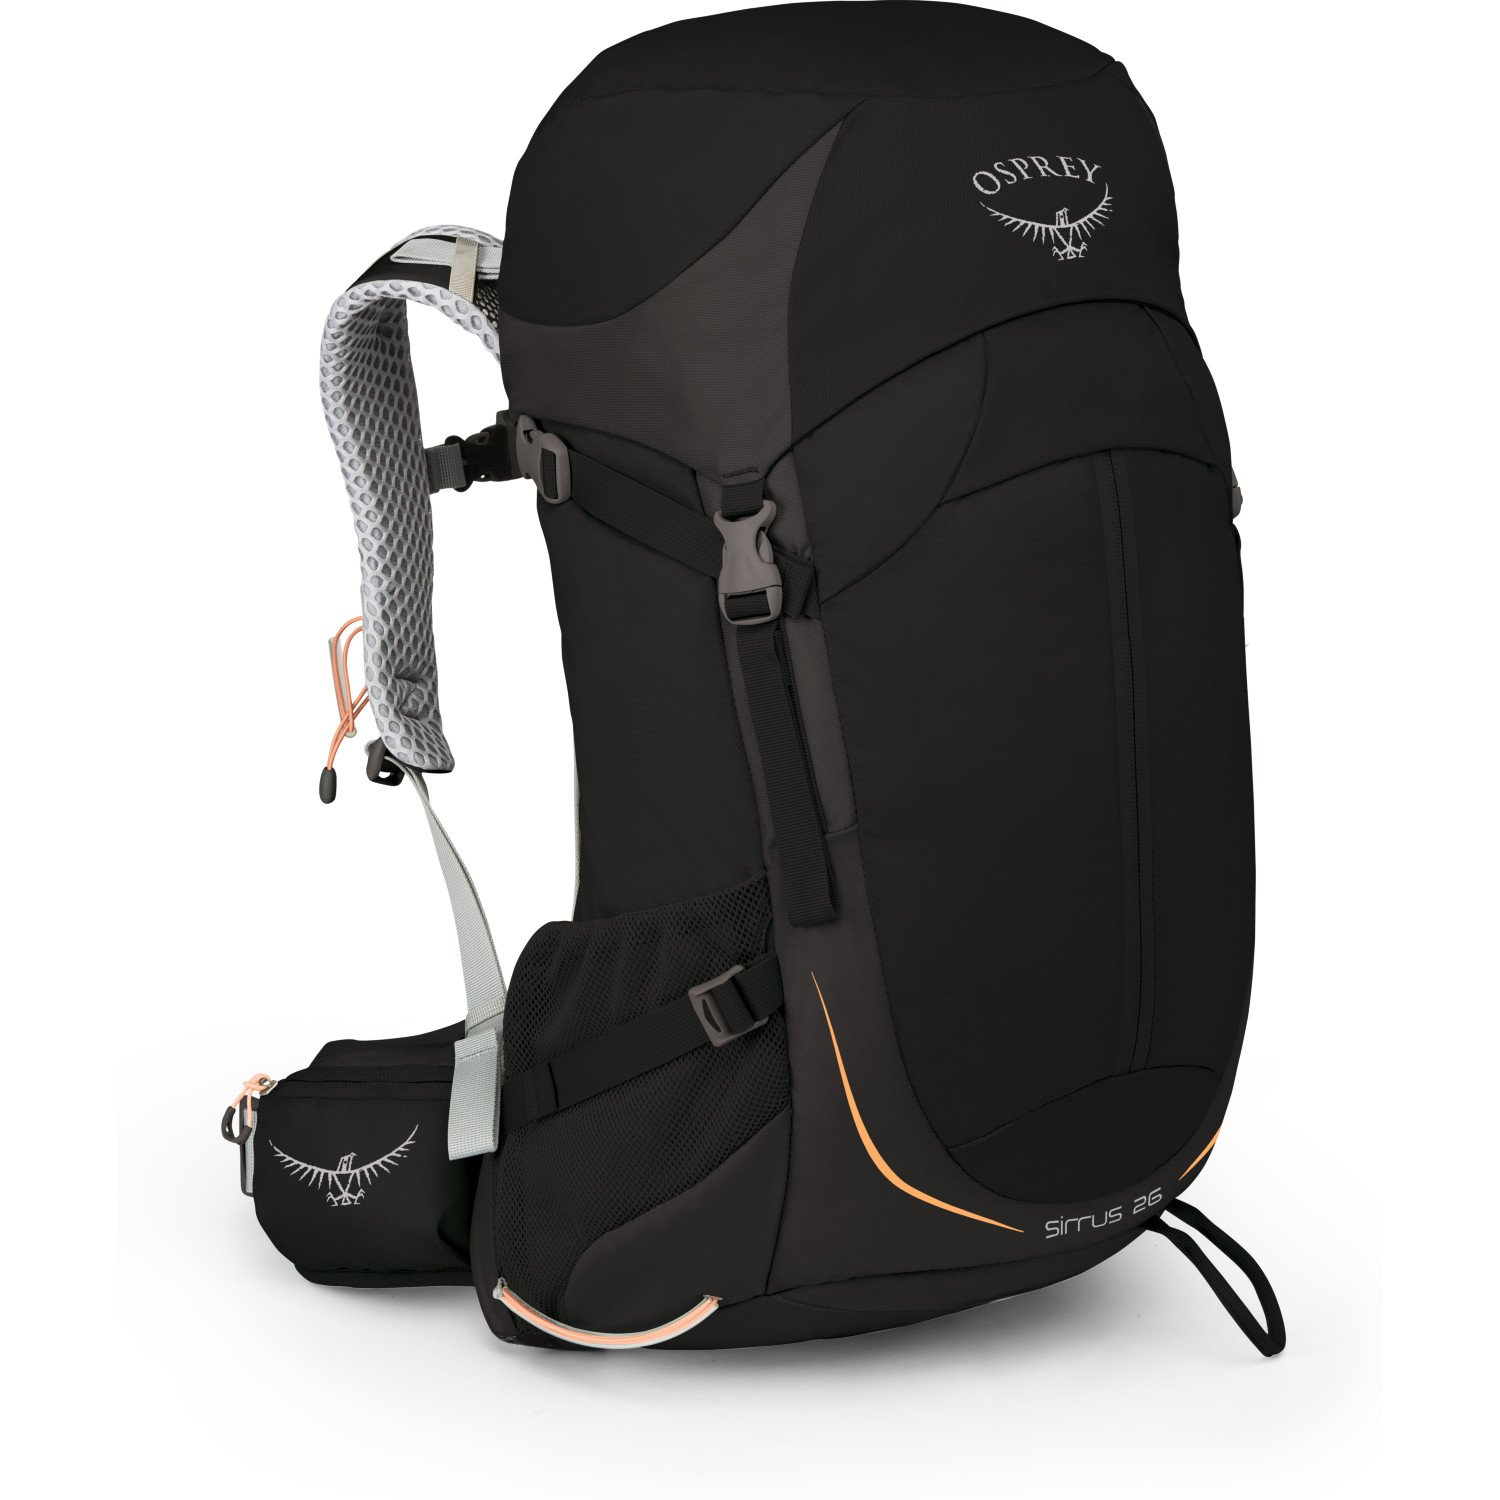 Osprey Sirrus 26 Womens Hiking Backpack One Size Black by Osprey